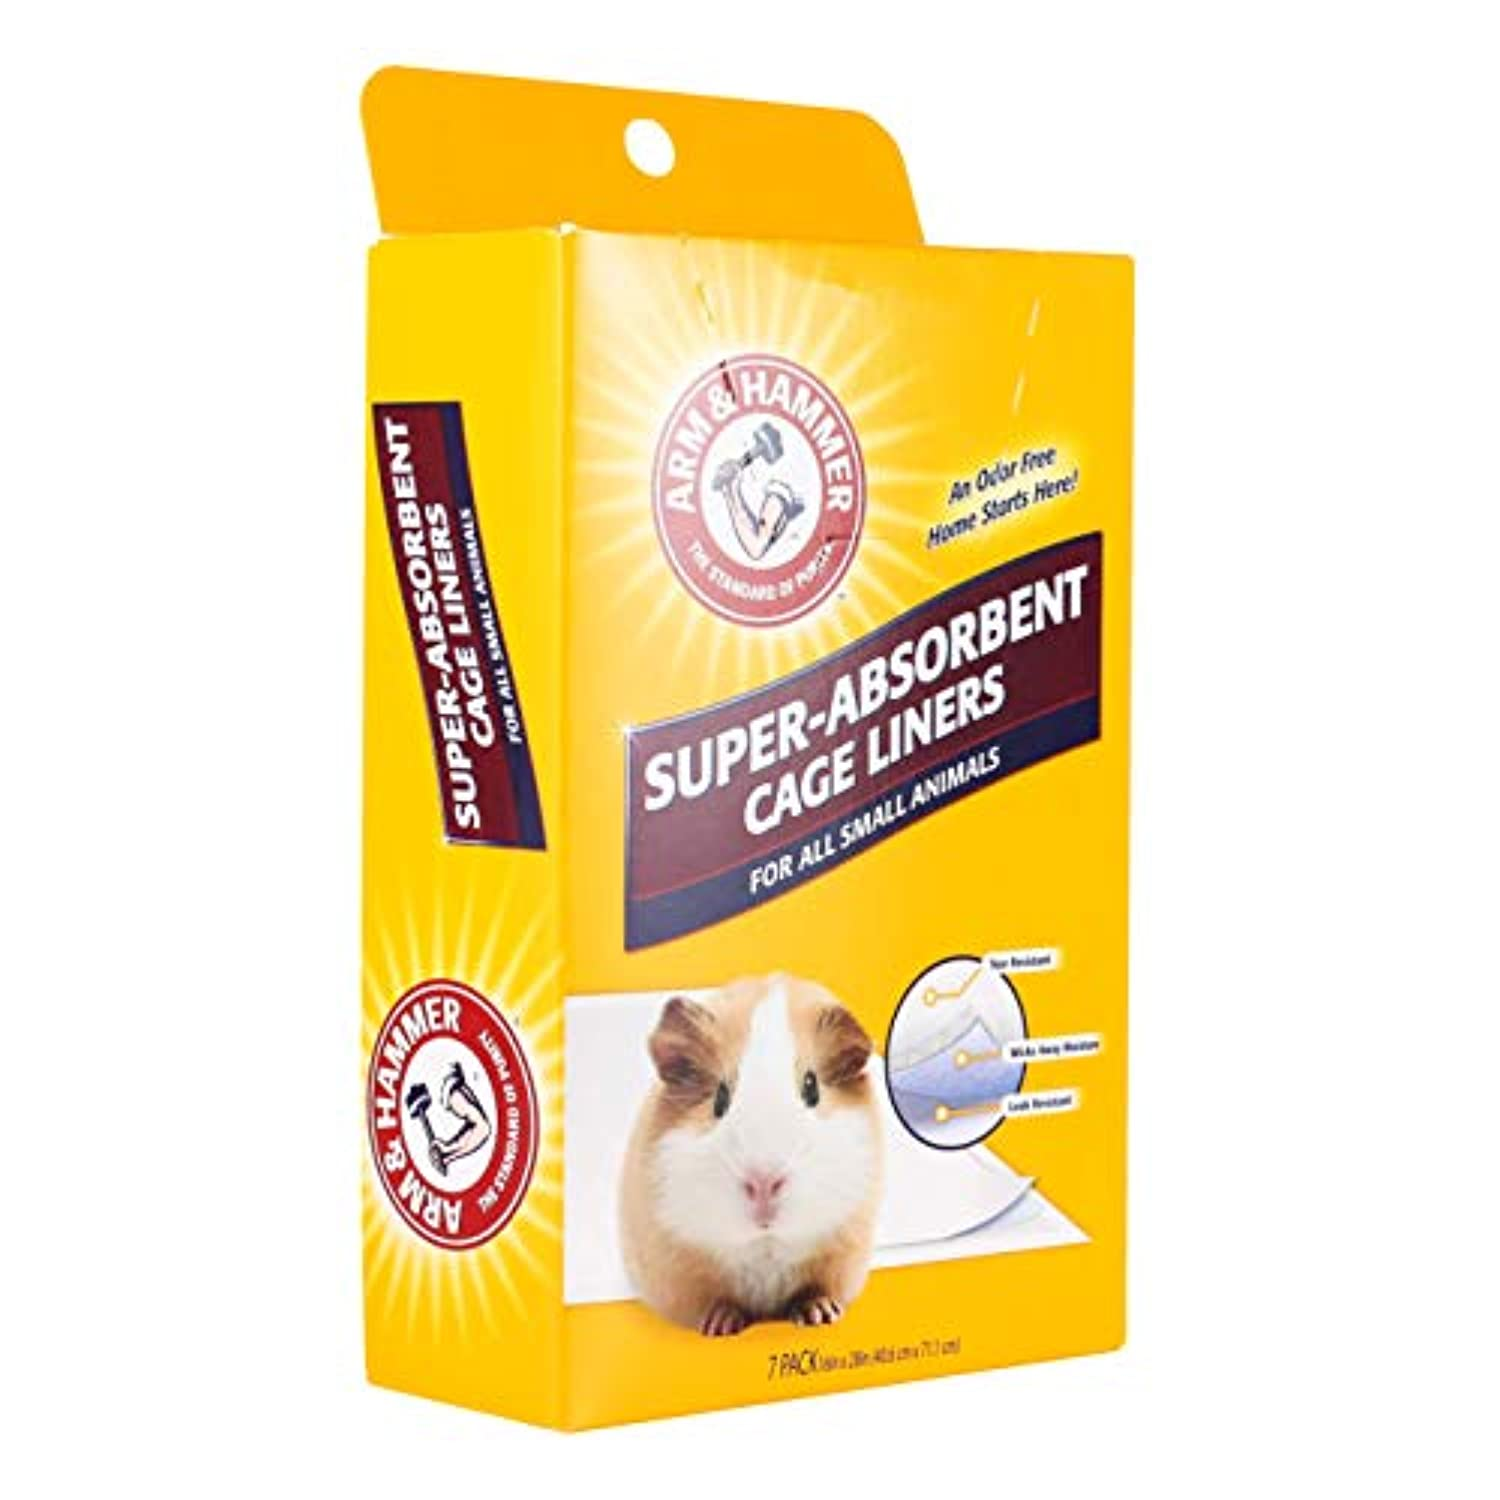 Classier: Buy Arm & Hammer For Pets Arm & Hammer Super-Absorbent Cage Liners for Guinea Pigs, Hamsters, Rabbits & All Small Animals | Best Cage Liners for Small Animals, Control Pet Odors, 7 Count